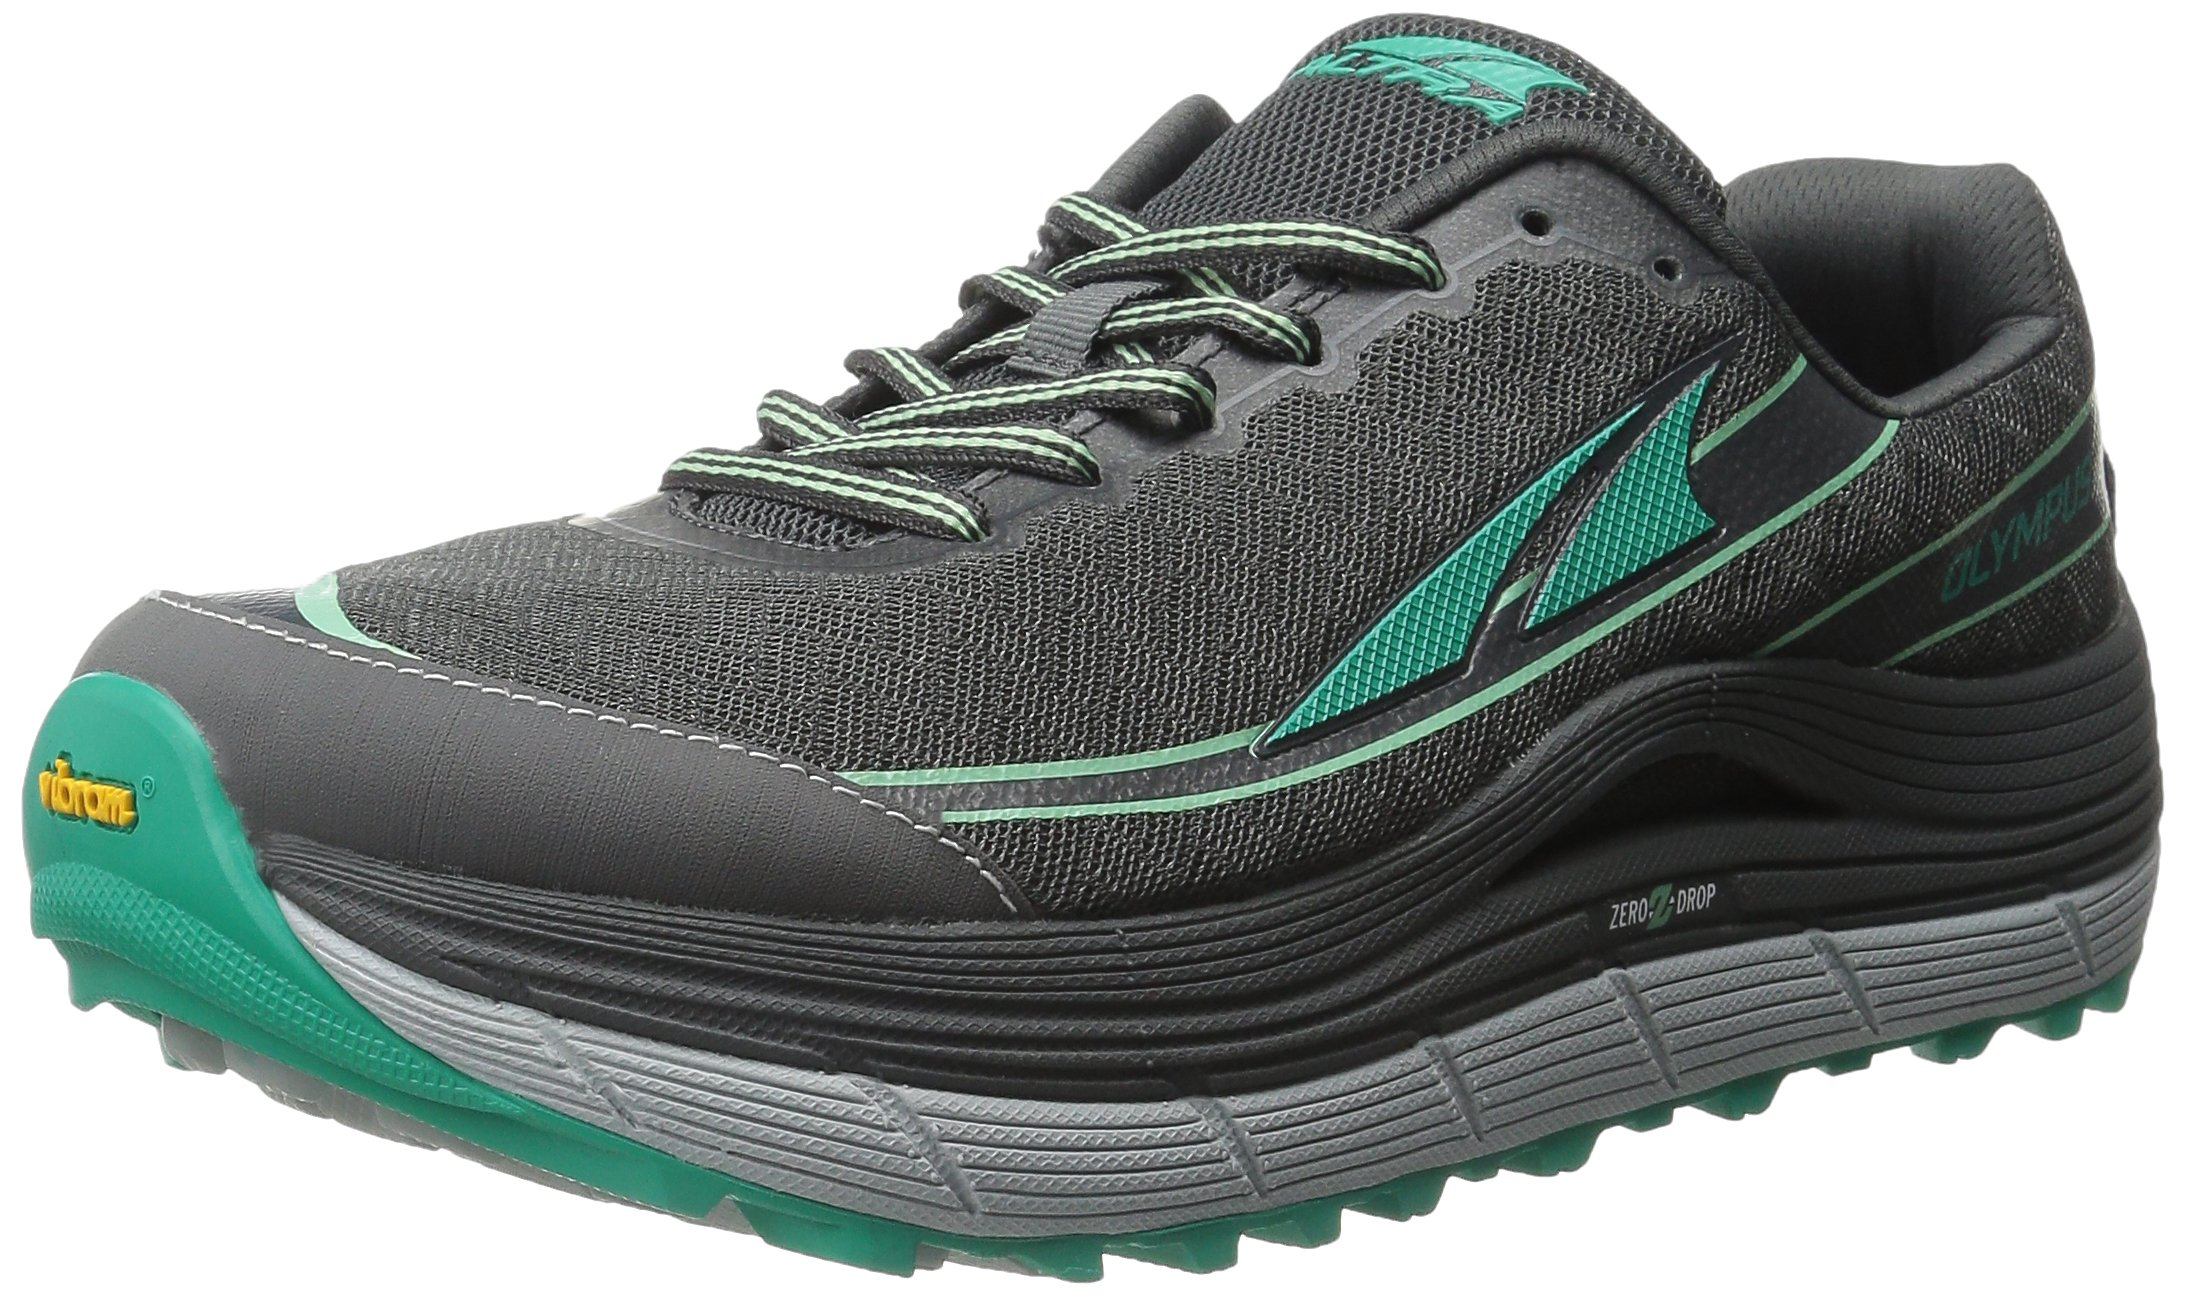 Altra Women's Olympus 2 Trail Running Shoe, Silver/Green, 10 M US